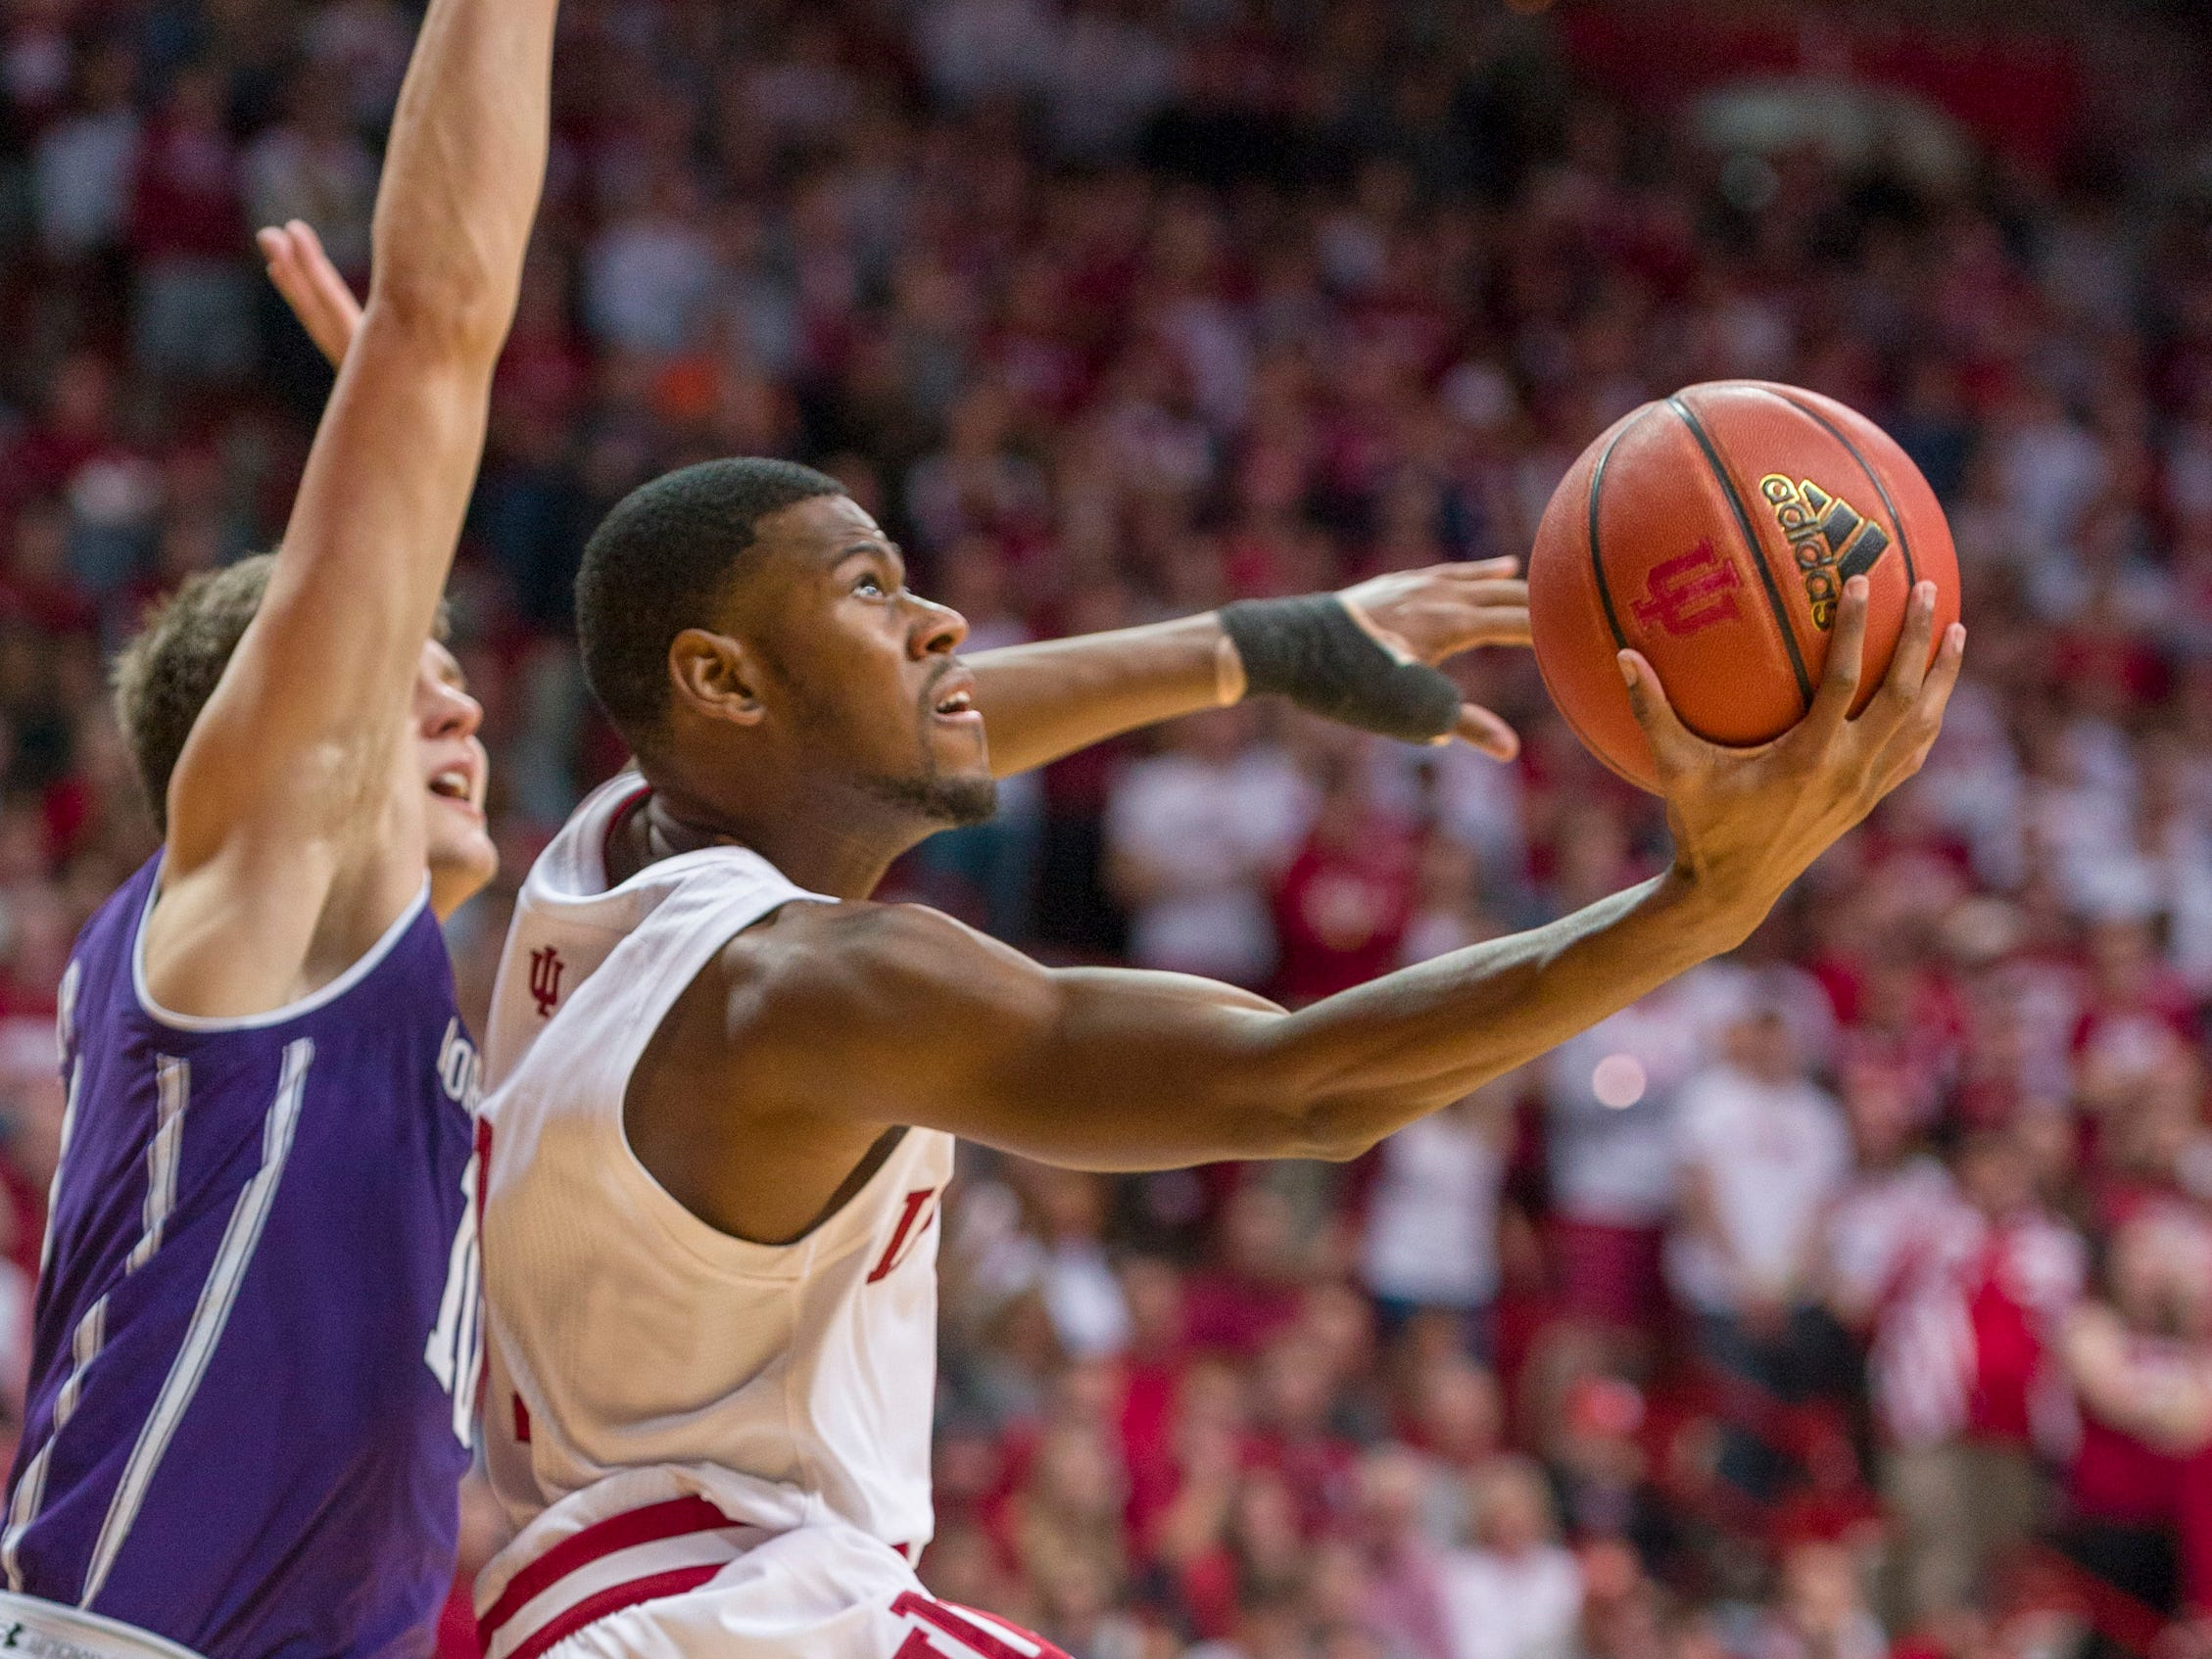 Indiana guard Aljami Durham (1) drives the ball to the basket from the baseline during the second half of an NCAA college basketball game against Northwestern Saturday, Dec. 1, 2018, in Bloomington, Ind. Indiana won 68-66.